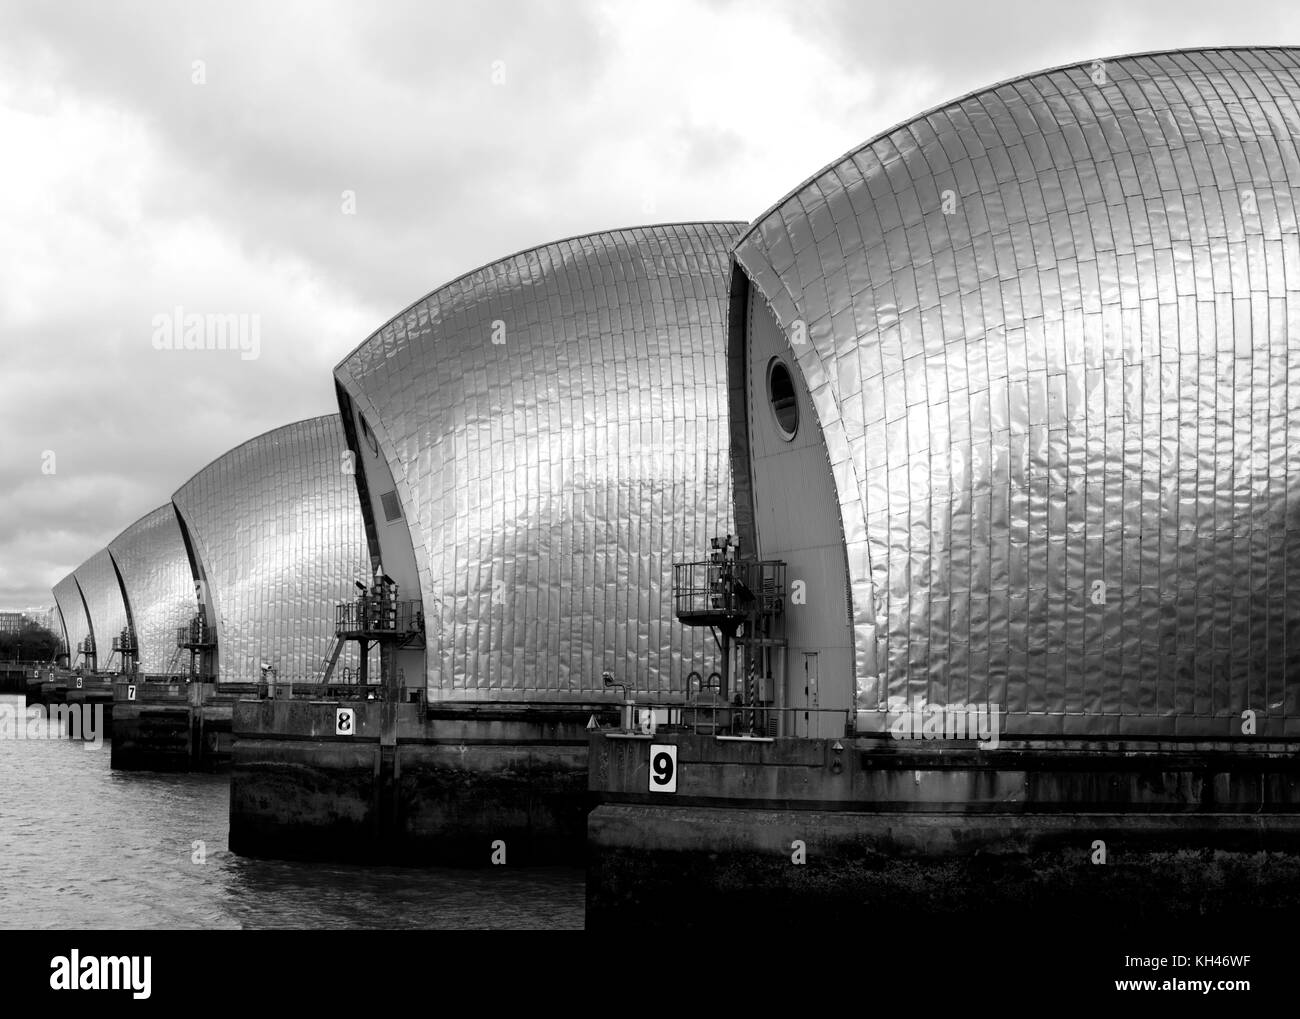 Black and white side view of The Thames Barrier, London, UK - Stock Image